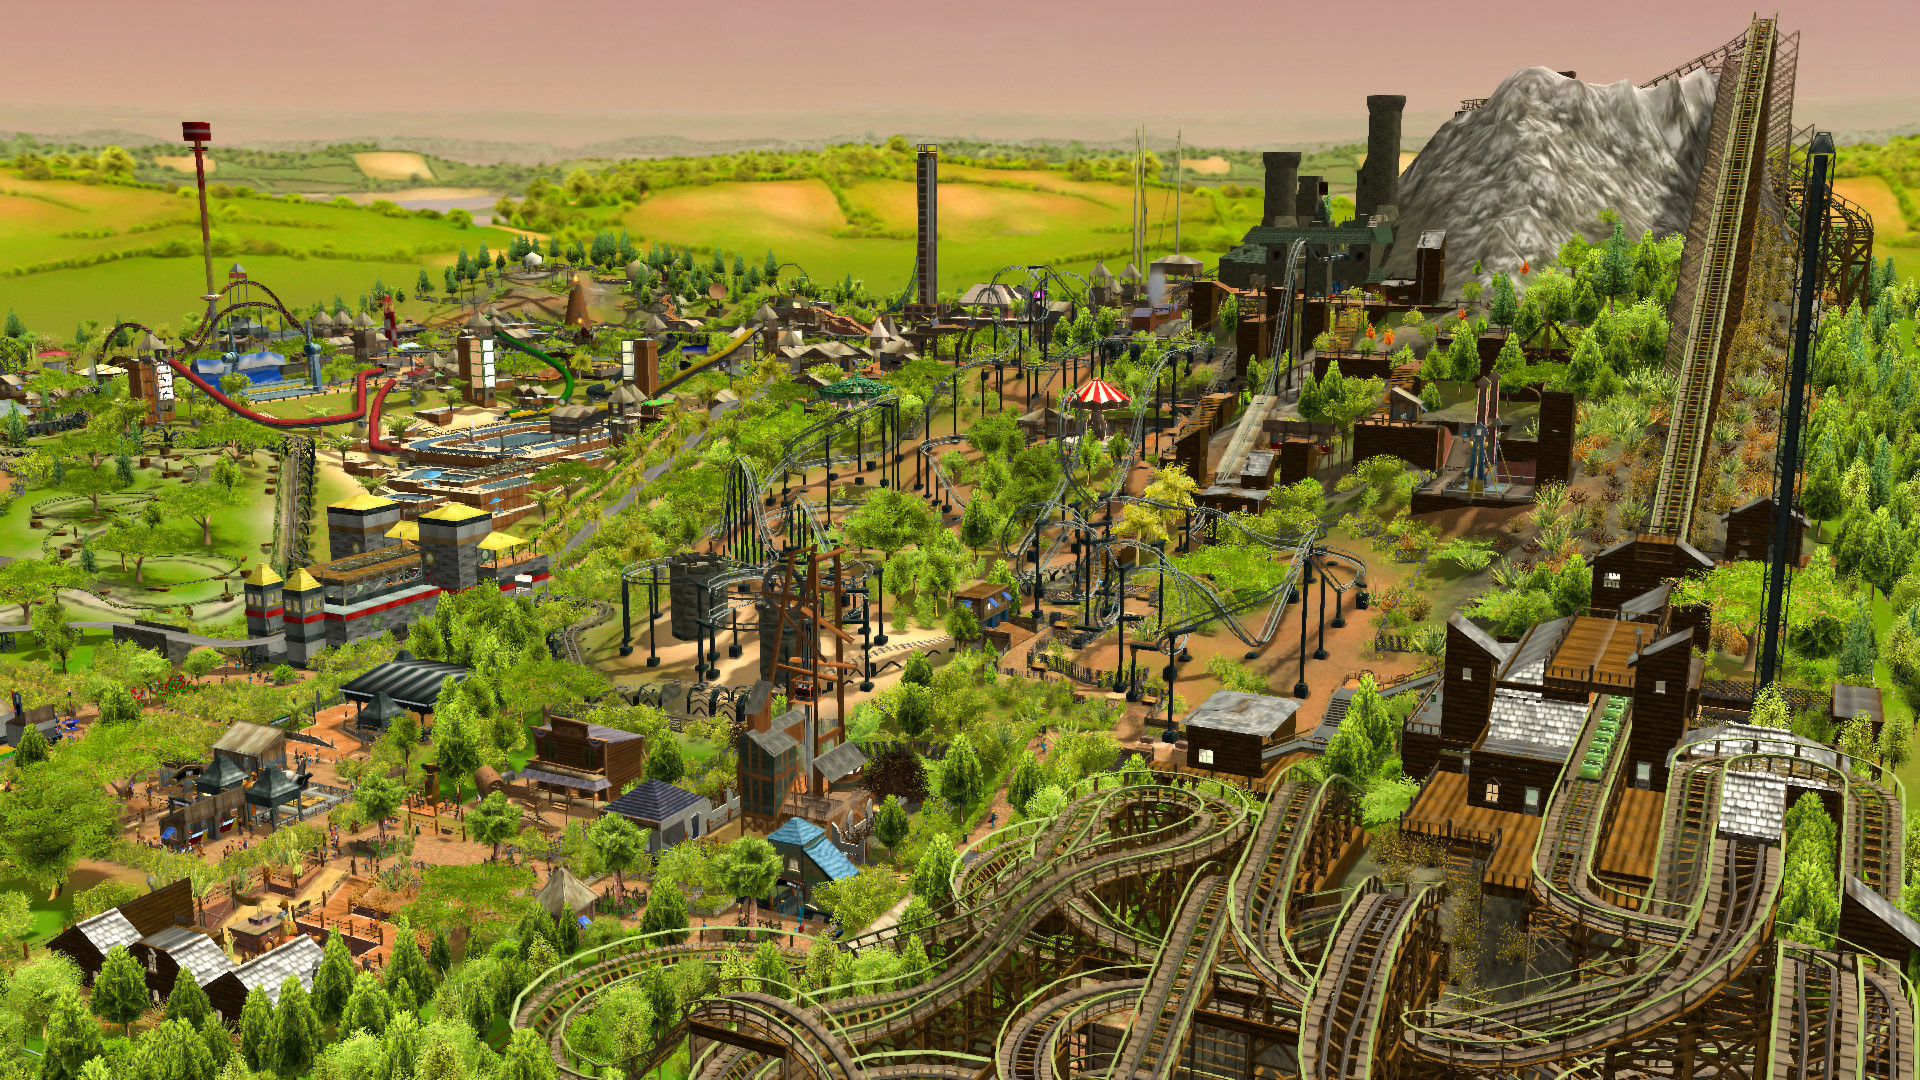 RollerCoaster Tycoon 3: Complete Edition download for free